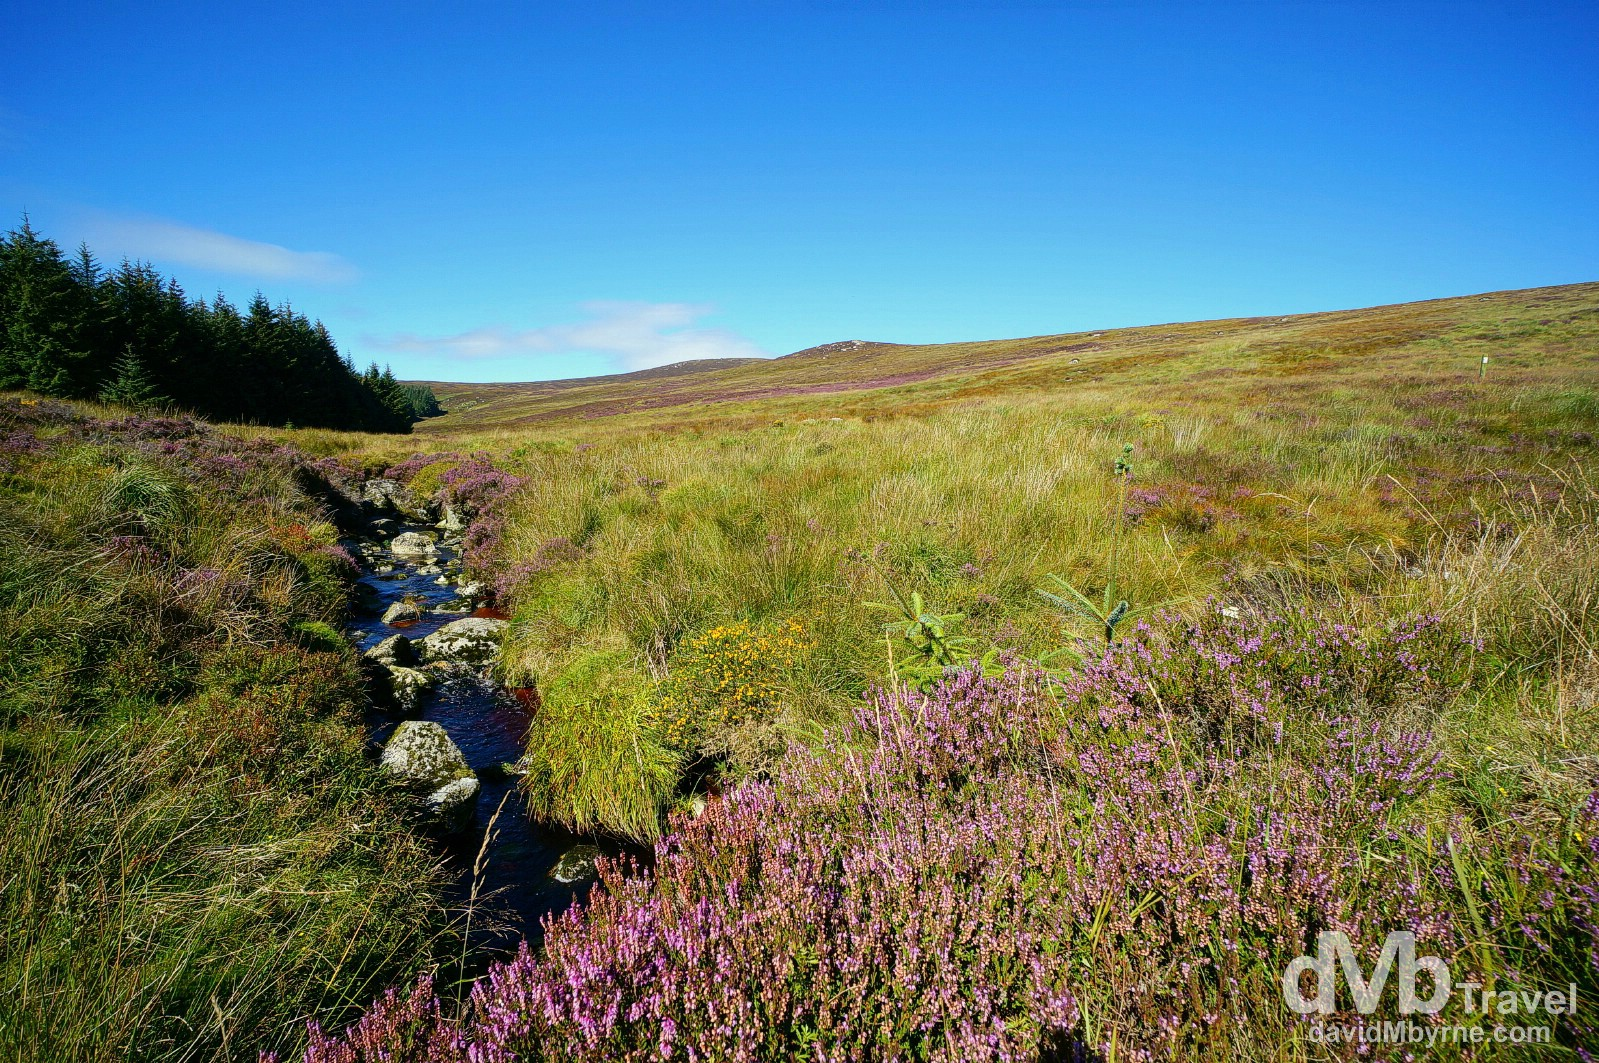 The Sally Gap, Co. Wicklow, Ireland. August 31, 2014.